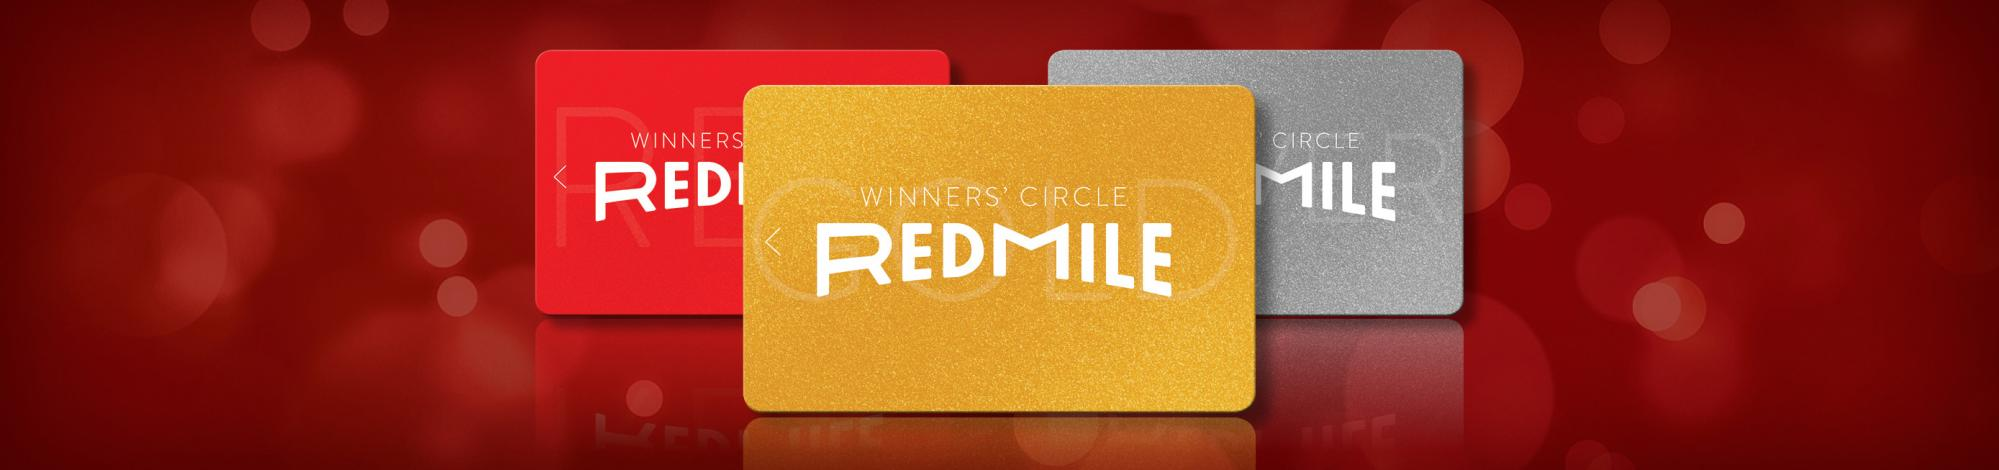 Red Mile Winners' Circle Cards